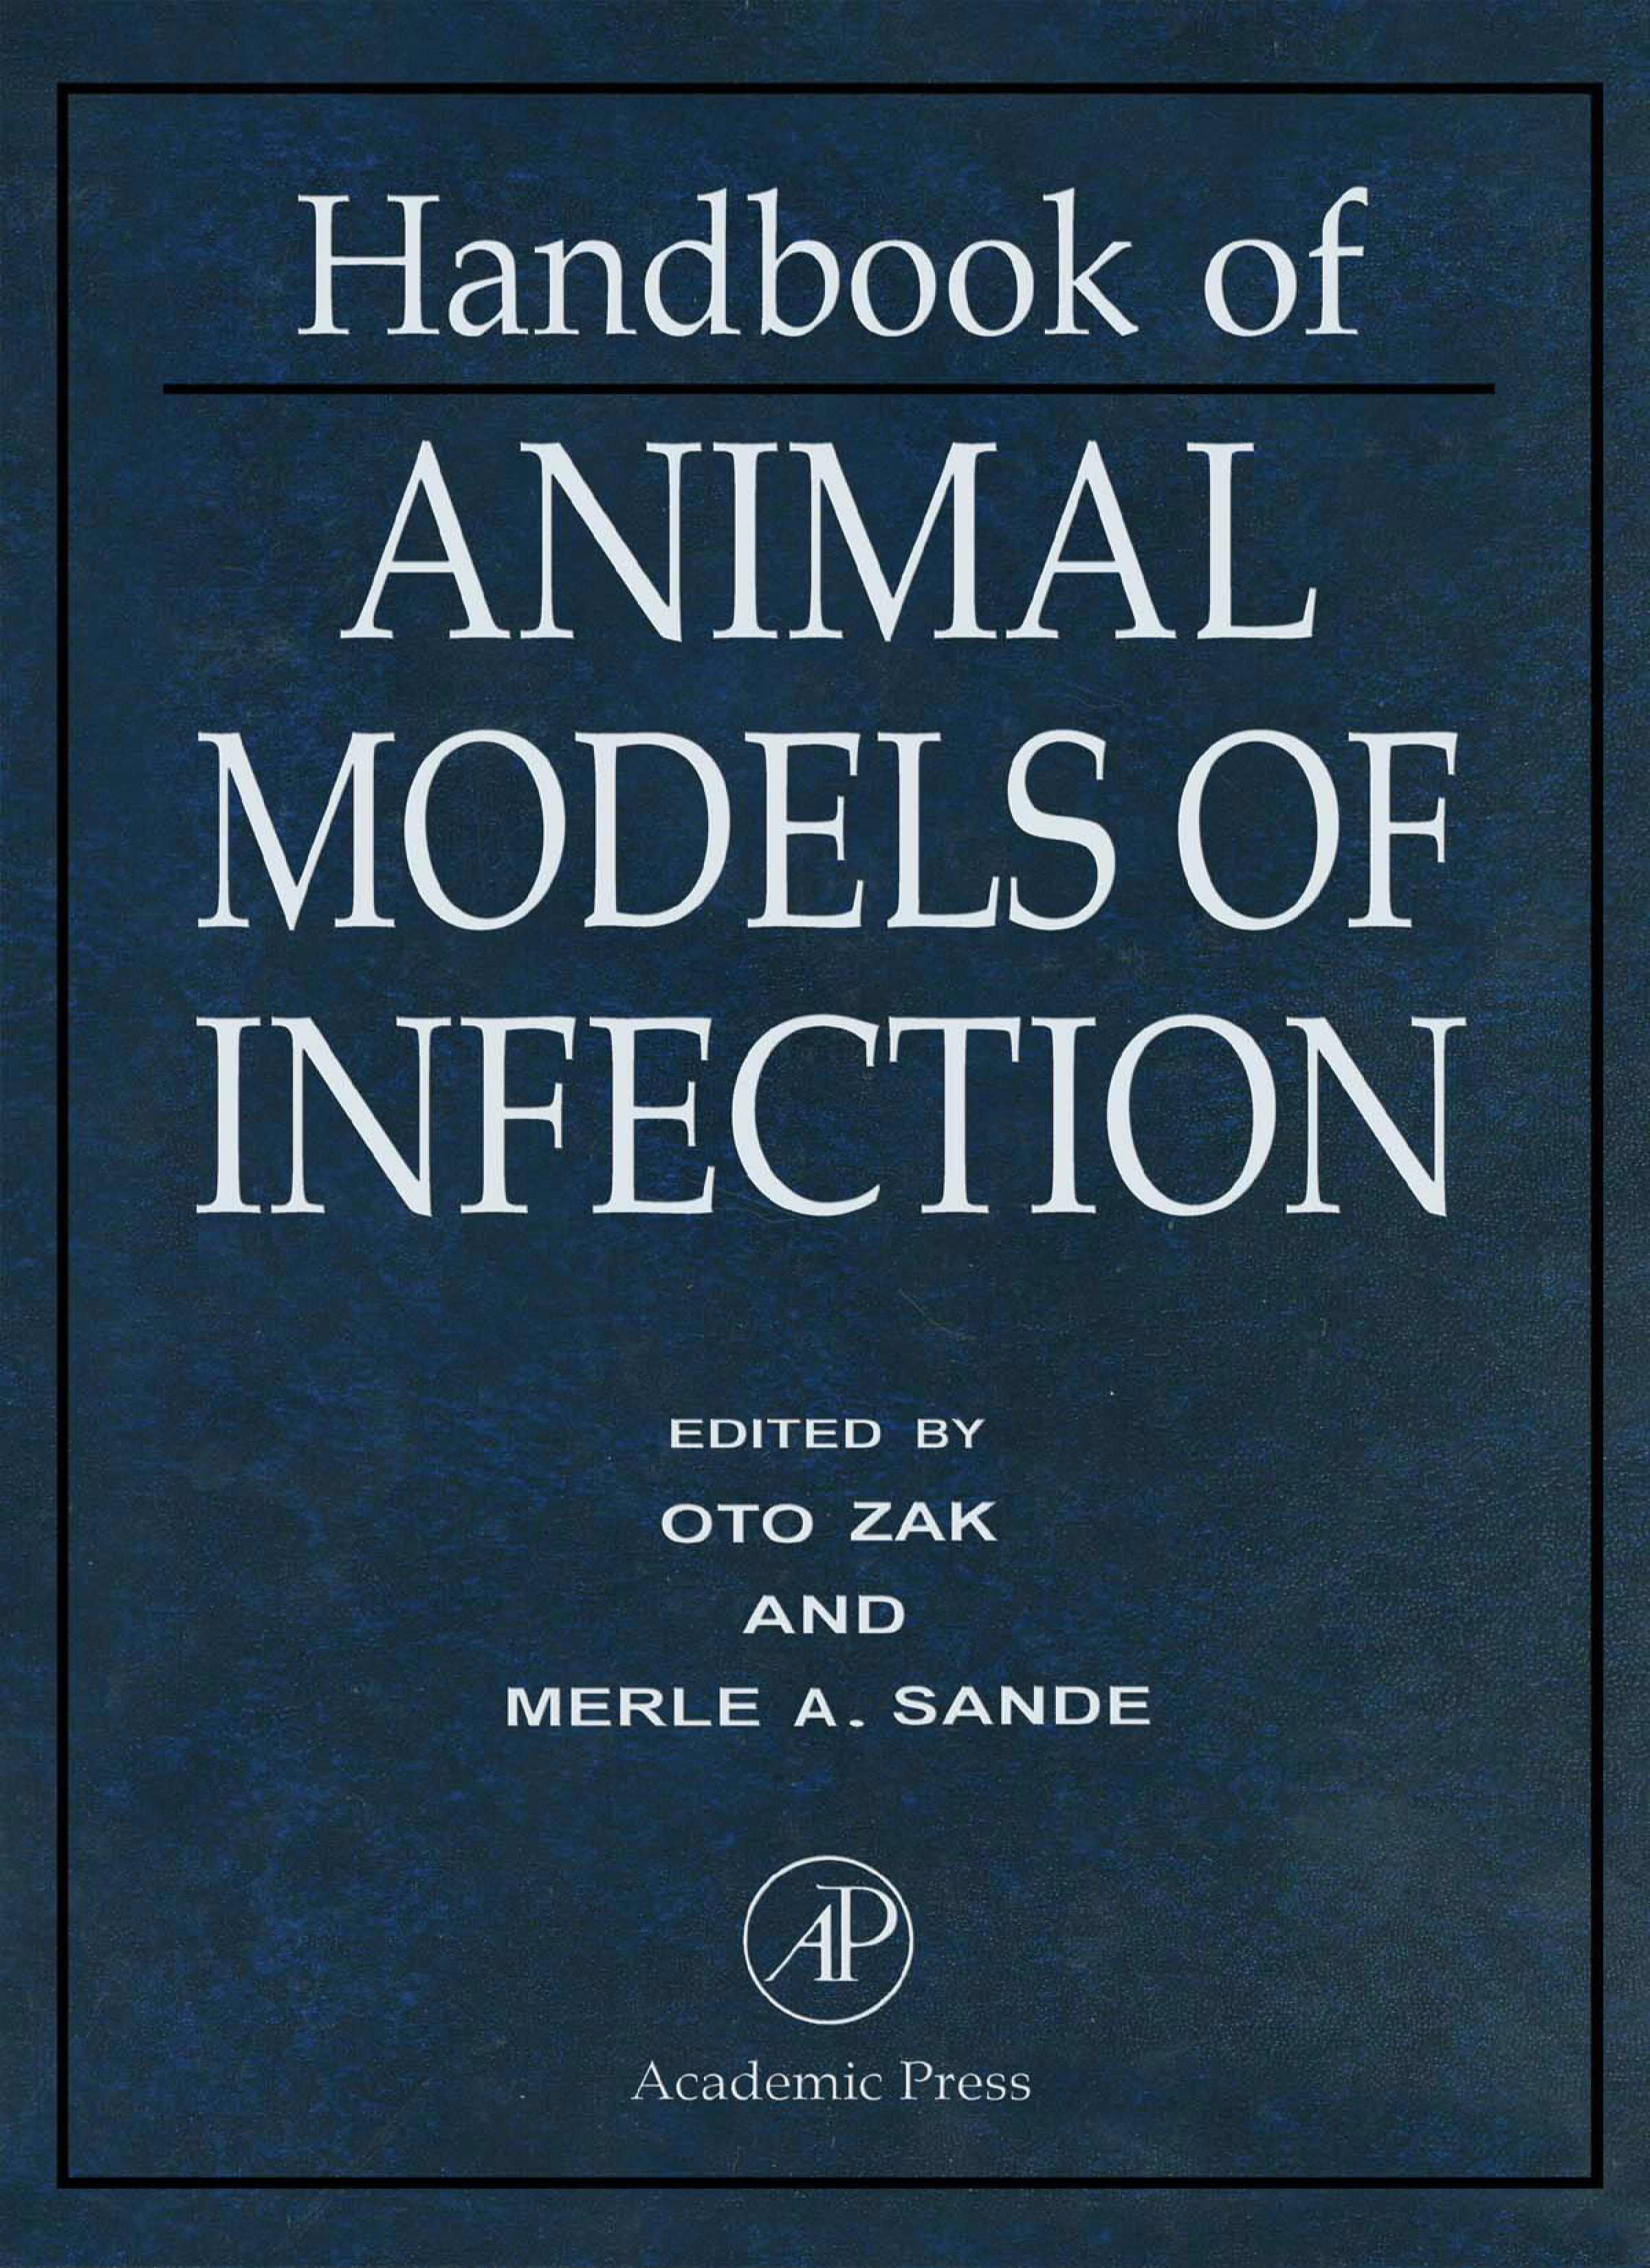 Handbook of Animal Models of Infection: Experimental Models in Antimicrobial Chemotherapy EB9780080533551